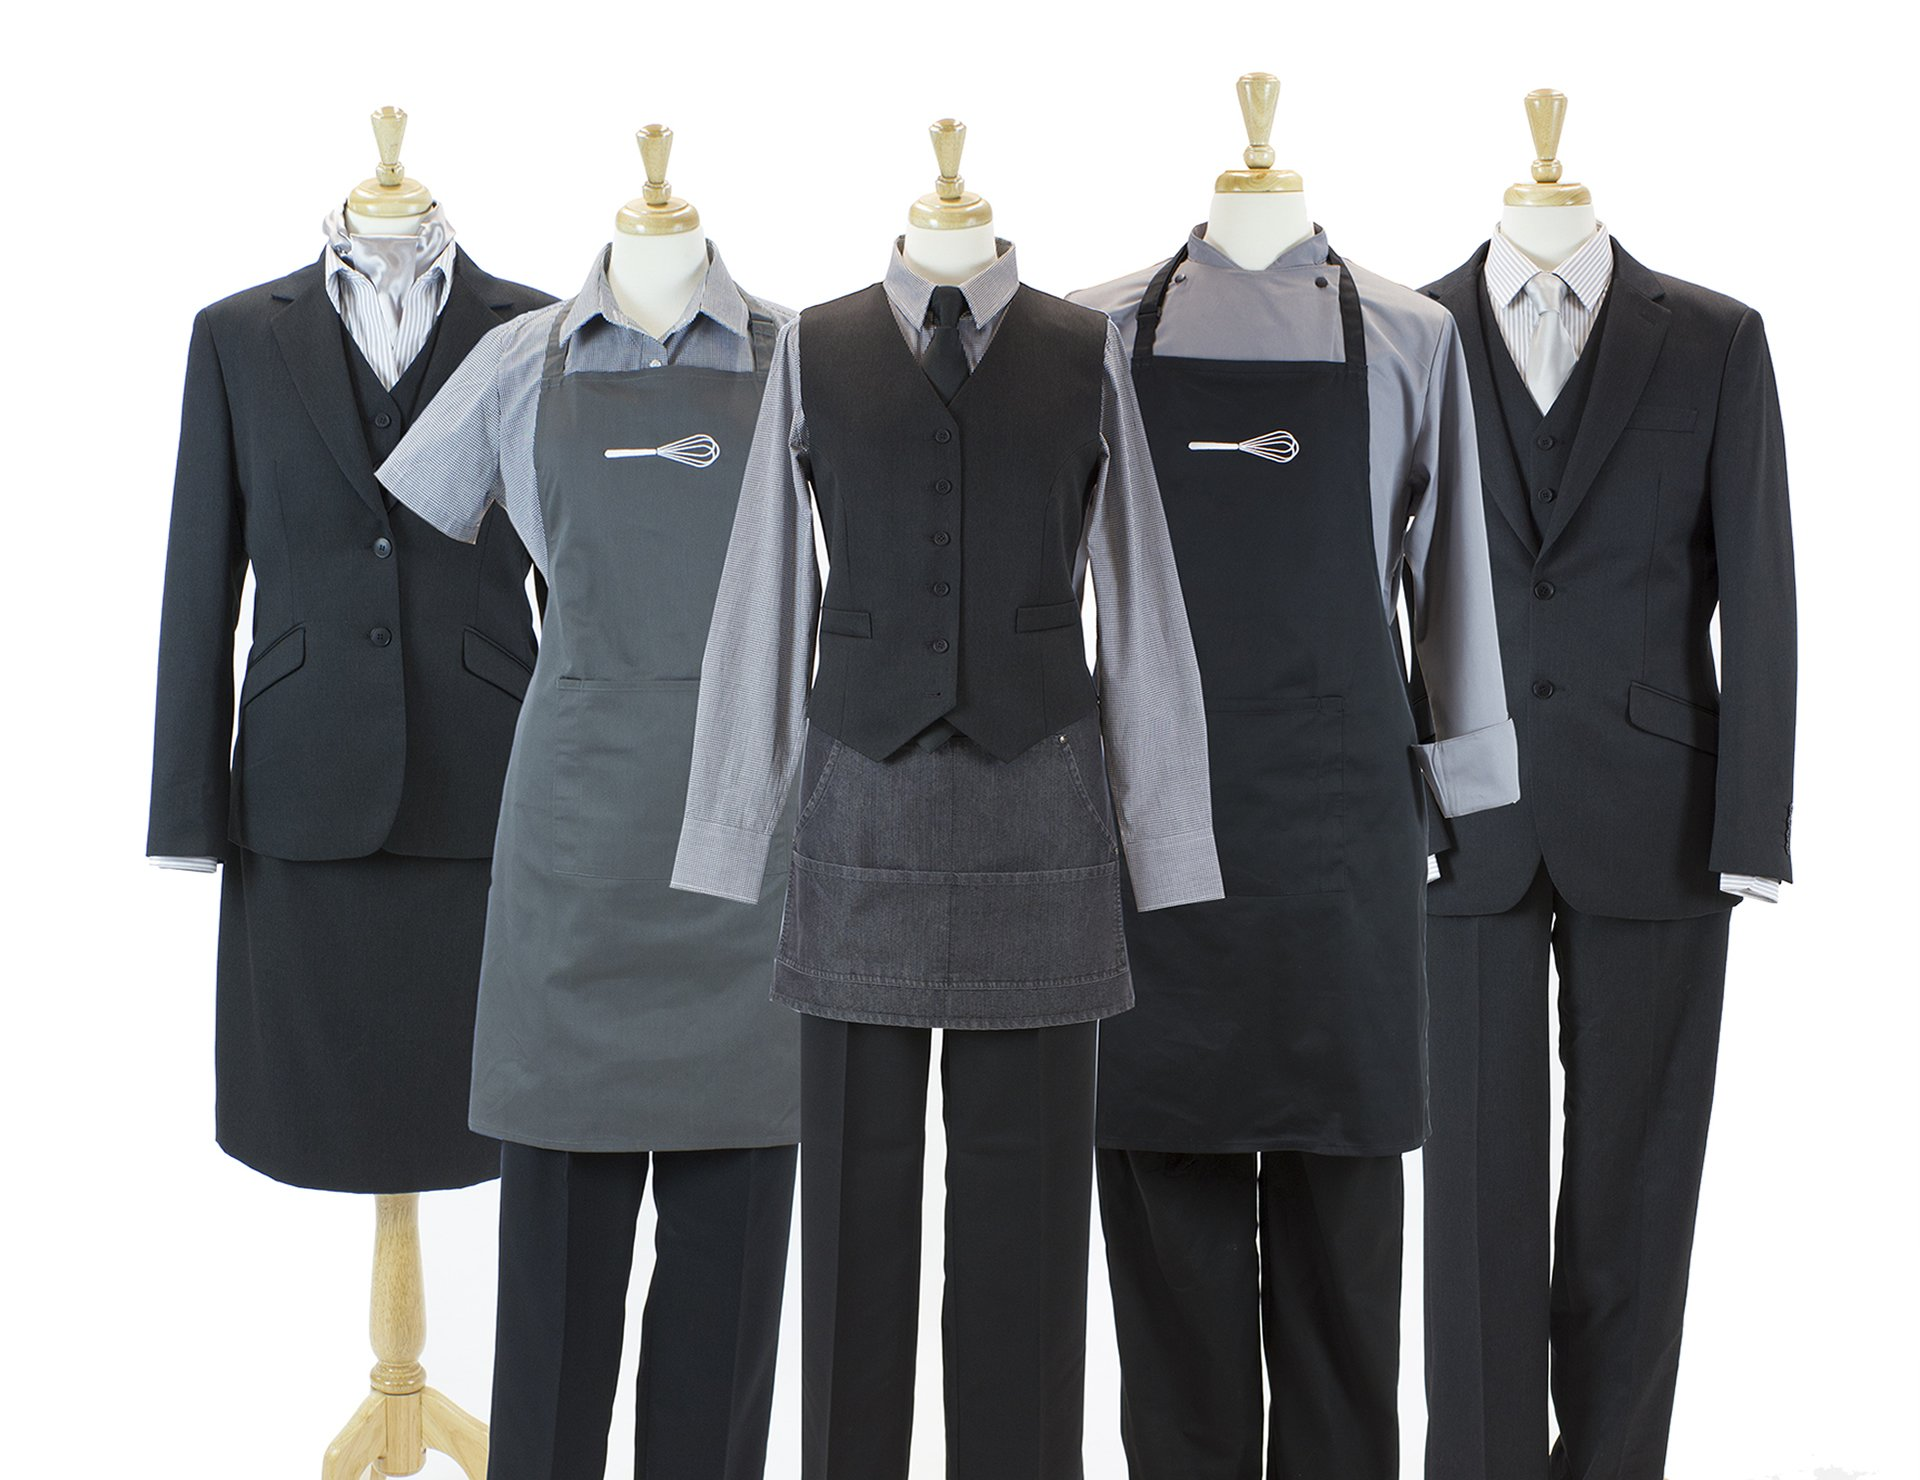 Chartwells Contract Caterer Staff Uniform Range